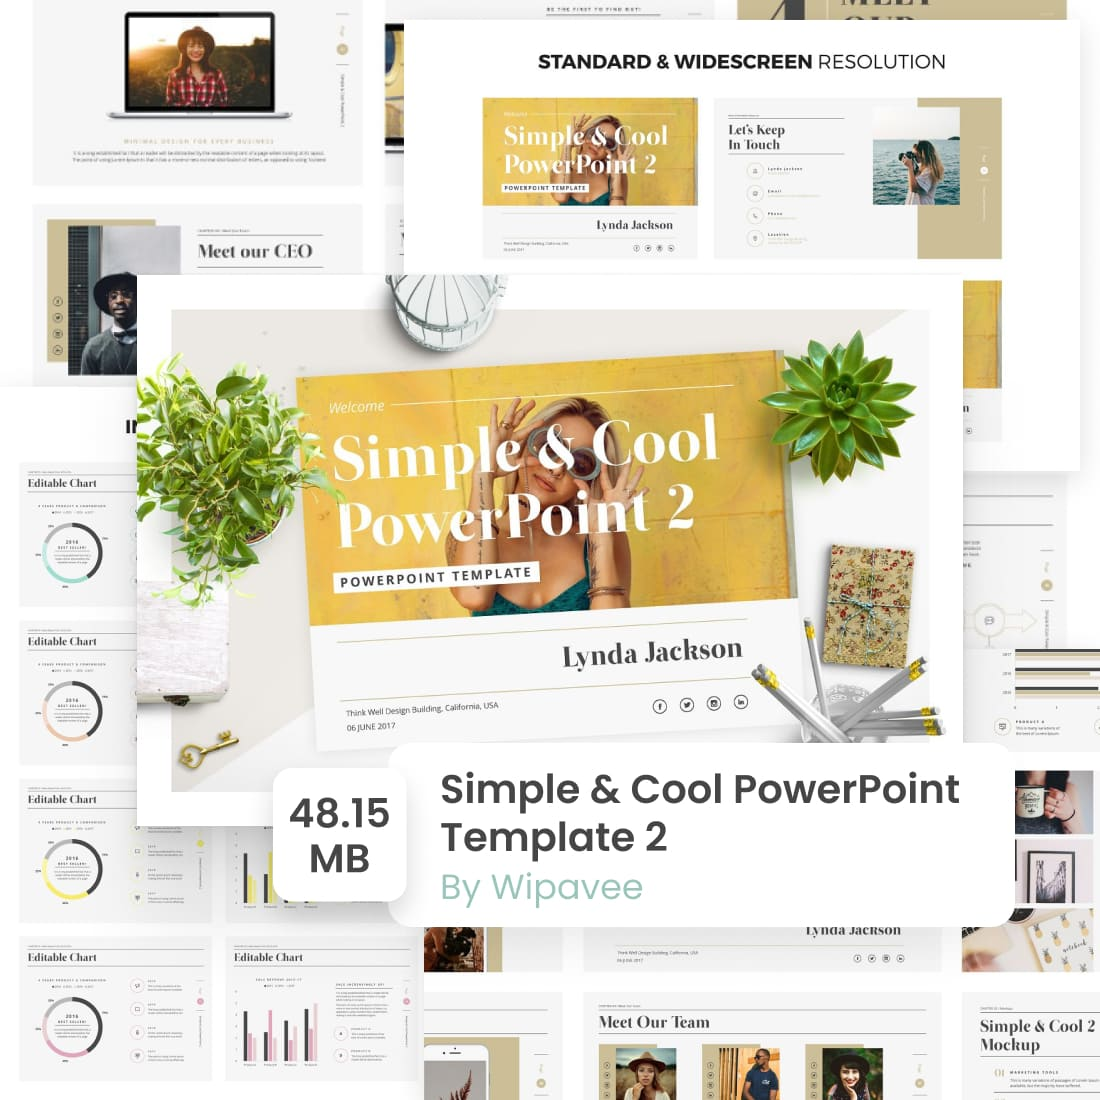 01 Simple Cool PowerPoint Template 2 1100x1100 1